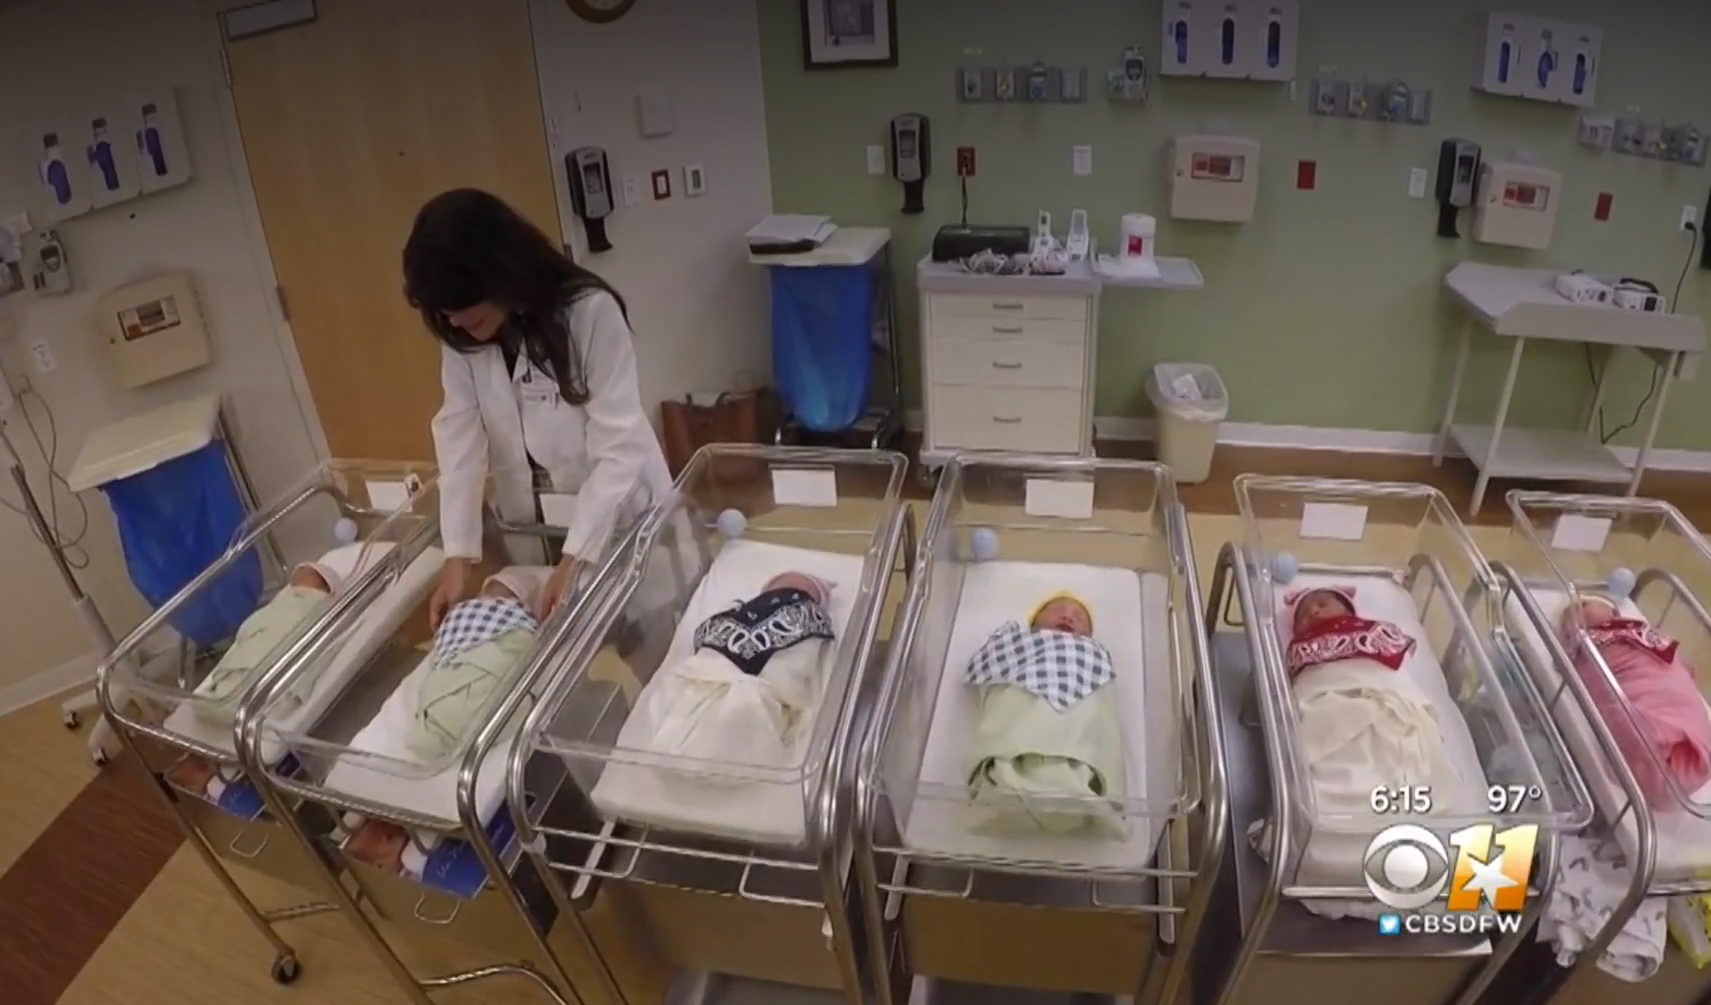 Baby boom at Texas hospital: 25 babies born in 25 hours - CBS News